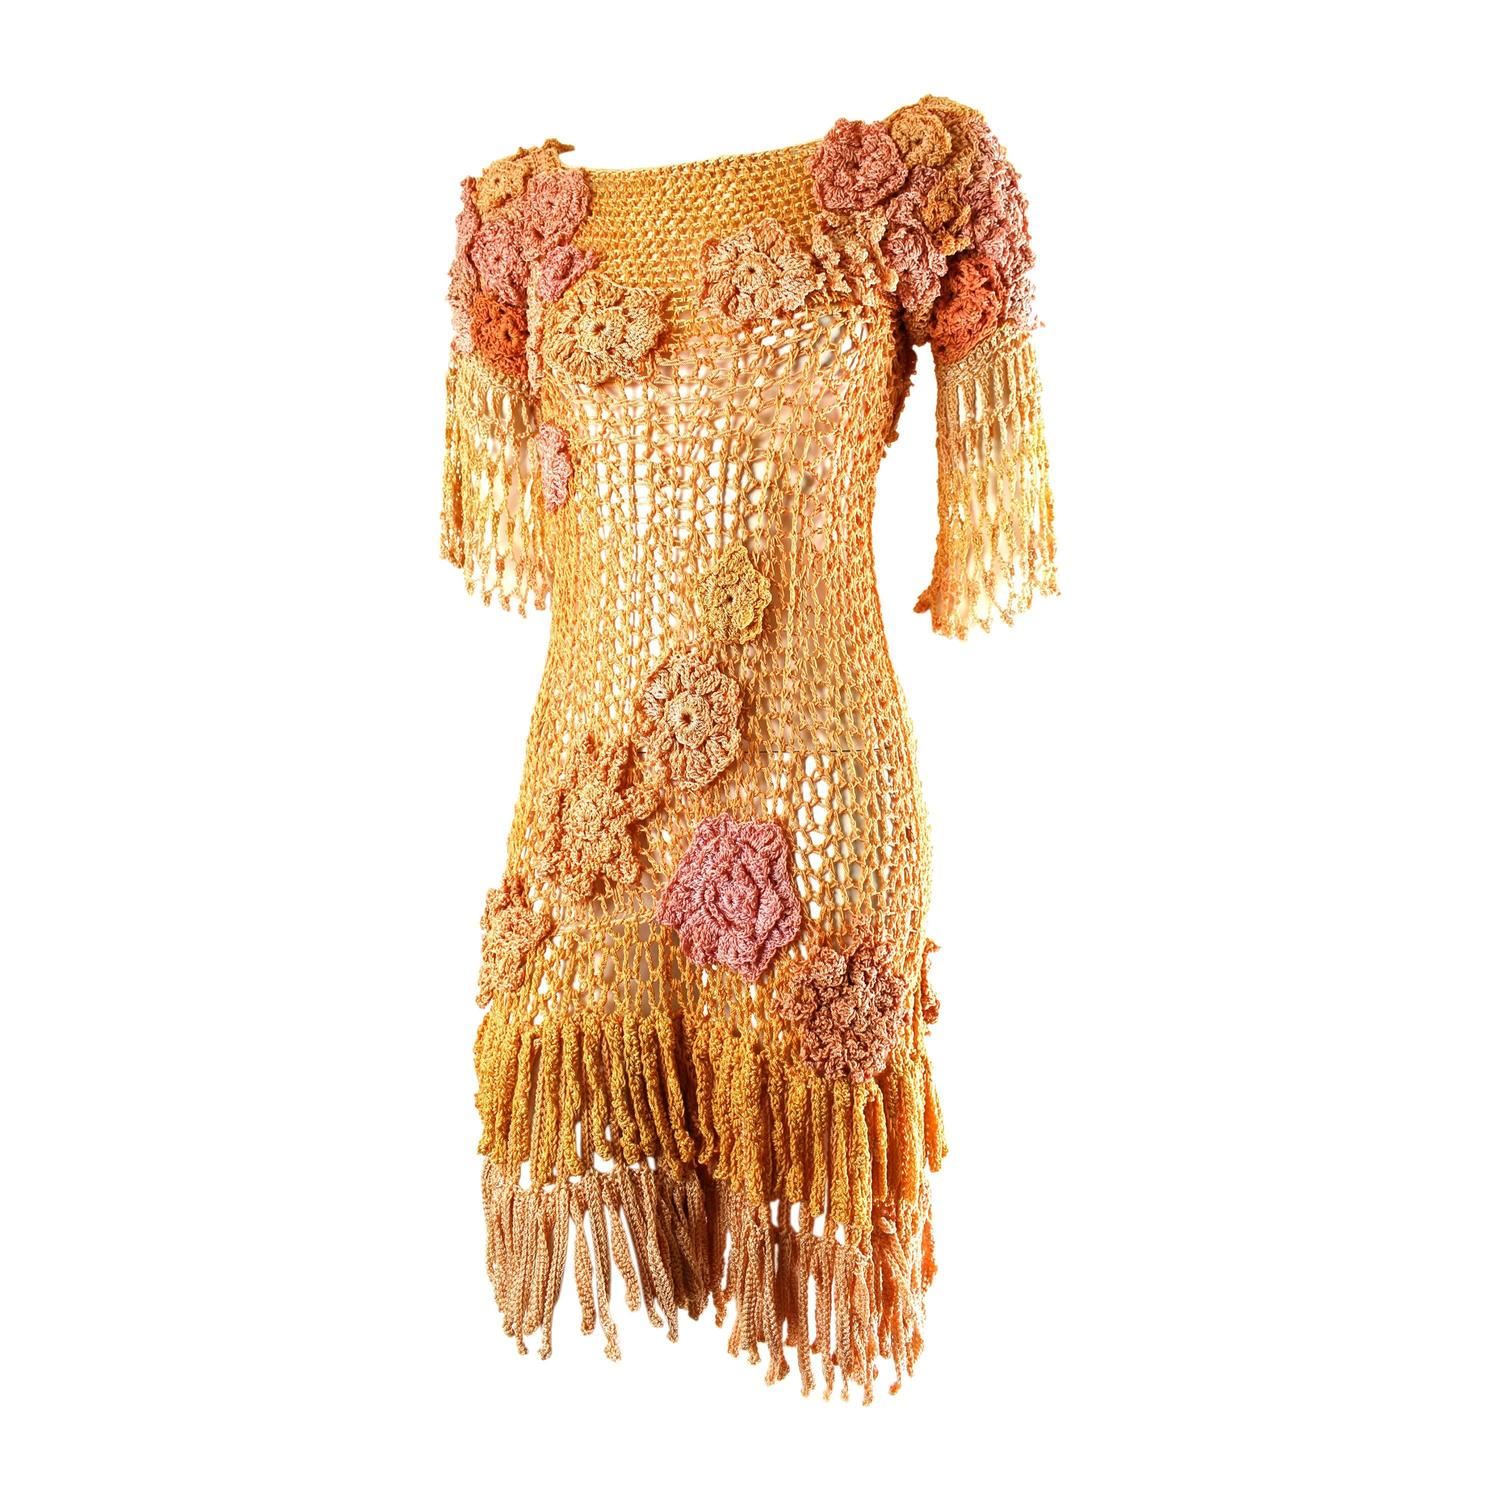 Hand Crochet : Vintage Hand Crochet Fringe Dress at 1stdibs